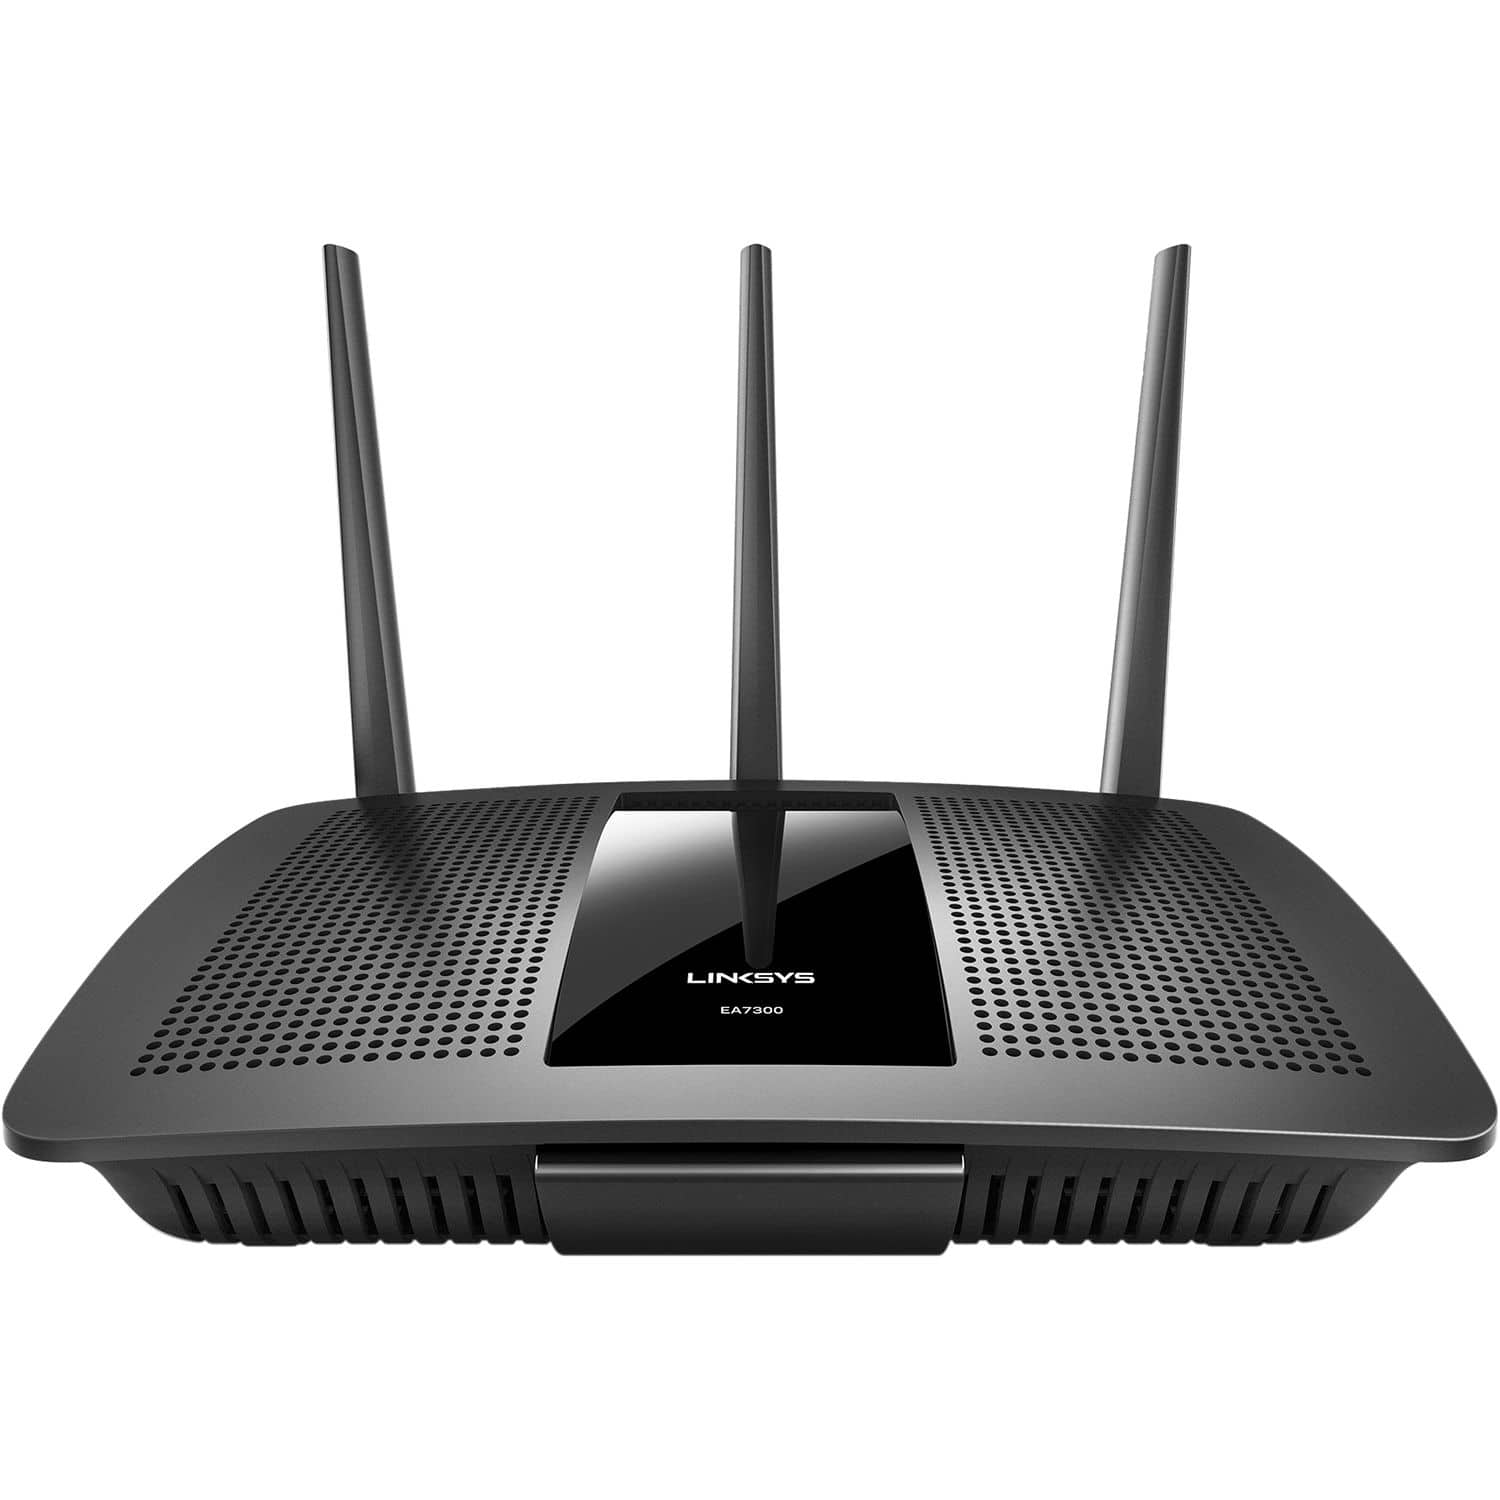 Linksys EA7300 Max-Stream AC1750 Dual-Band Smart Wireless Router - $40 (Factory Reconditioned)